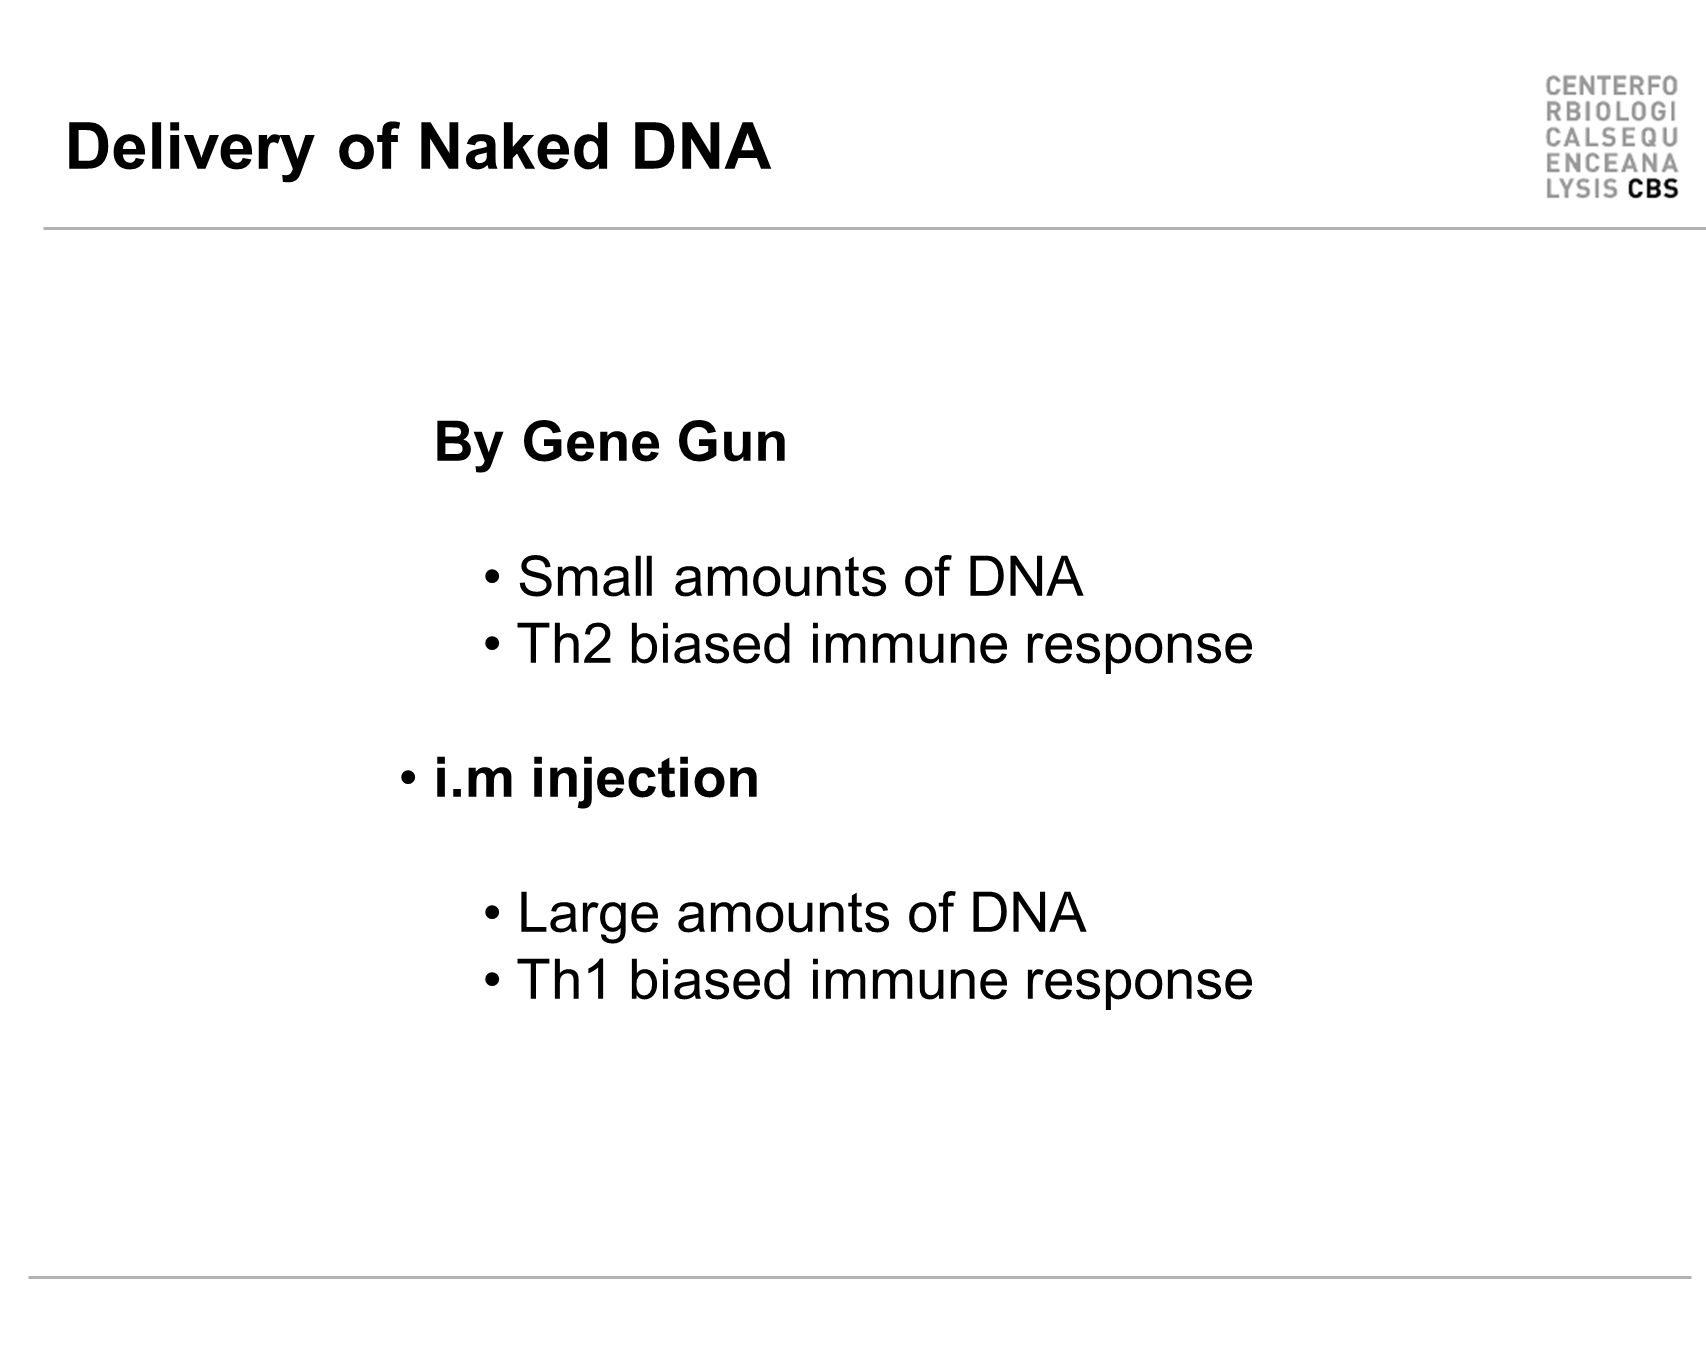 Delivery of Naked DNA By Gene Gun Small amounts of DNA Th2 biased immune response i.m injection Large amounts of DNA Th1 biased immune response